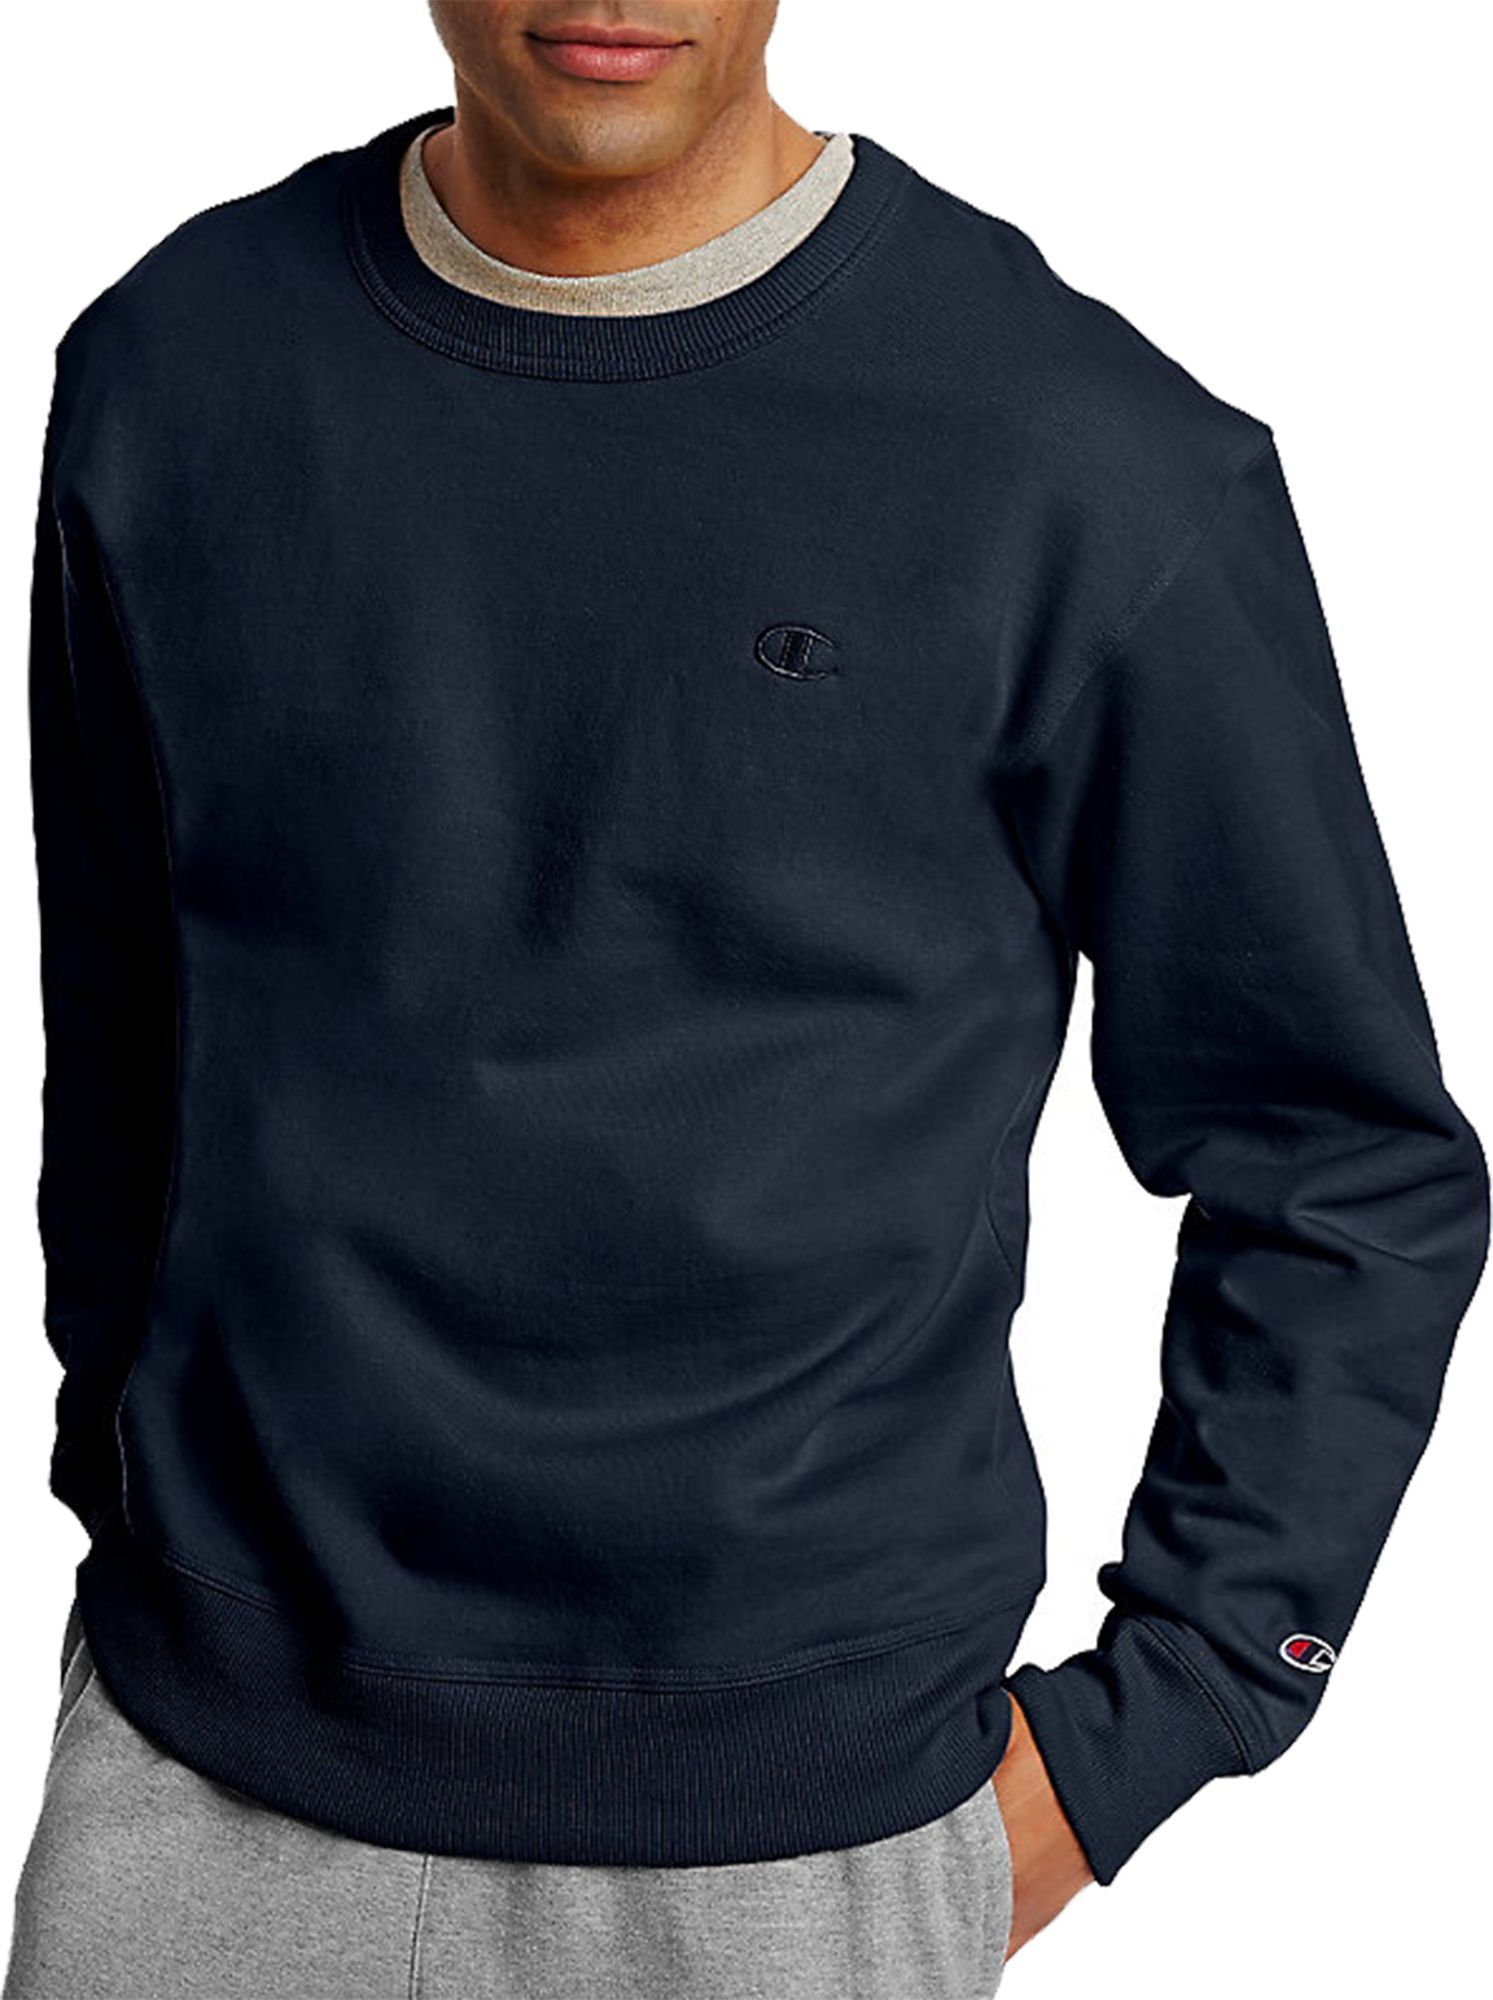 98d03c847946 Champion Men s Powerblend Fleece Crewneck Sweatshirt